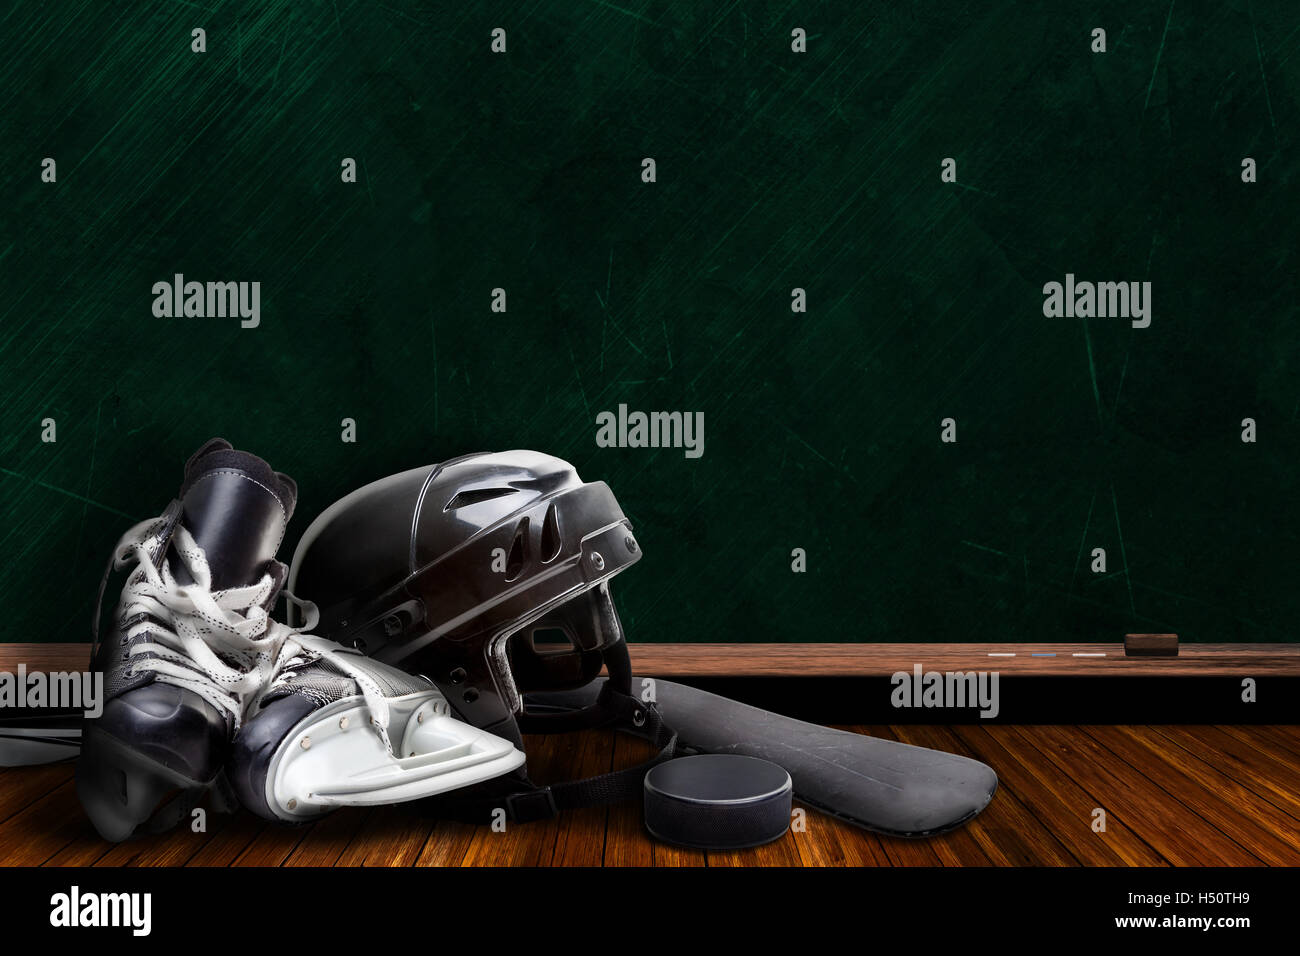 Ice hockey equipment consisting of skates, helmet, stick and puck with background chalk board copy space. - Stock Image